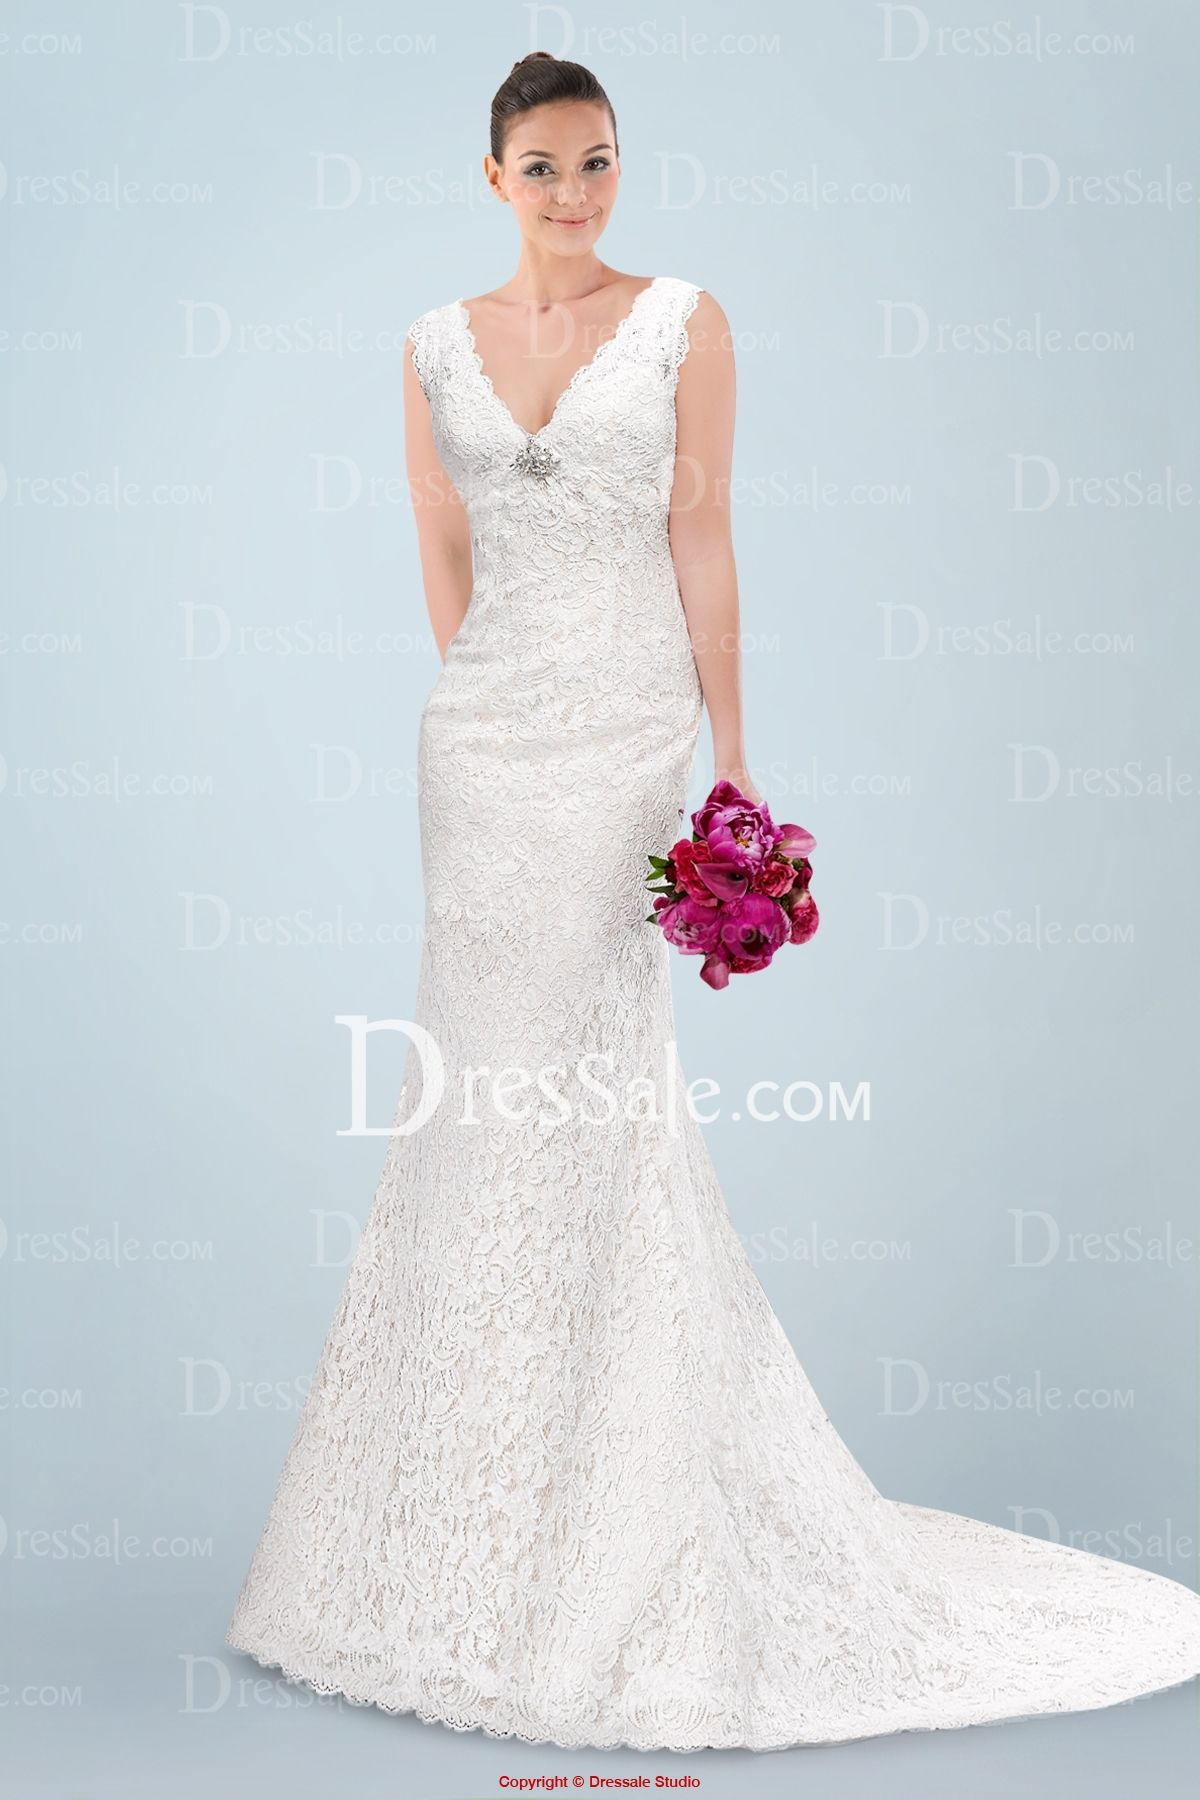 Alluring vneckline aline wedding dress with delicate lace overlay